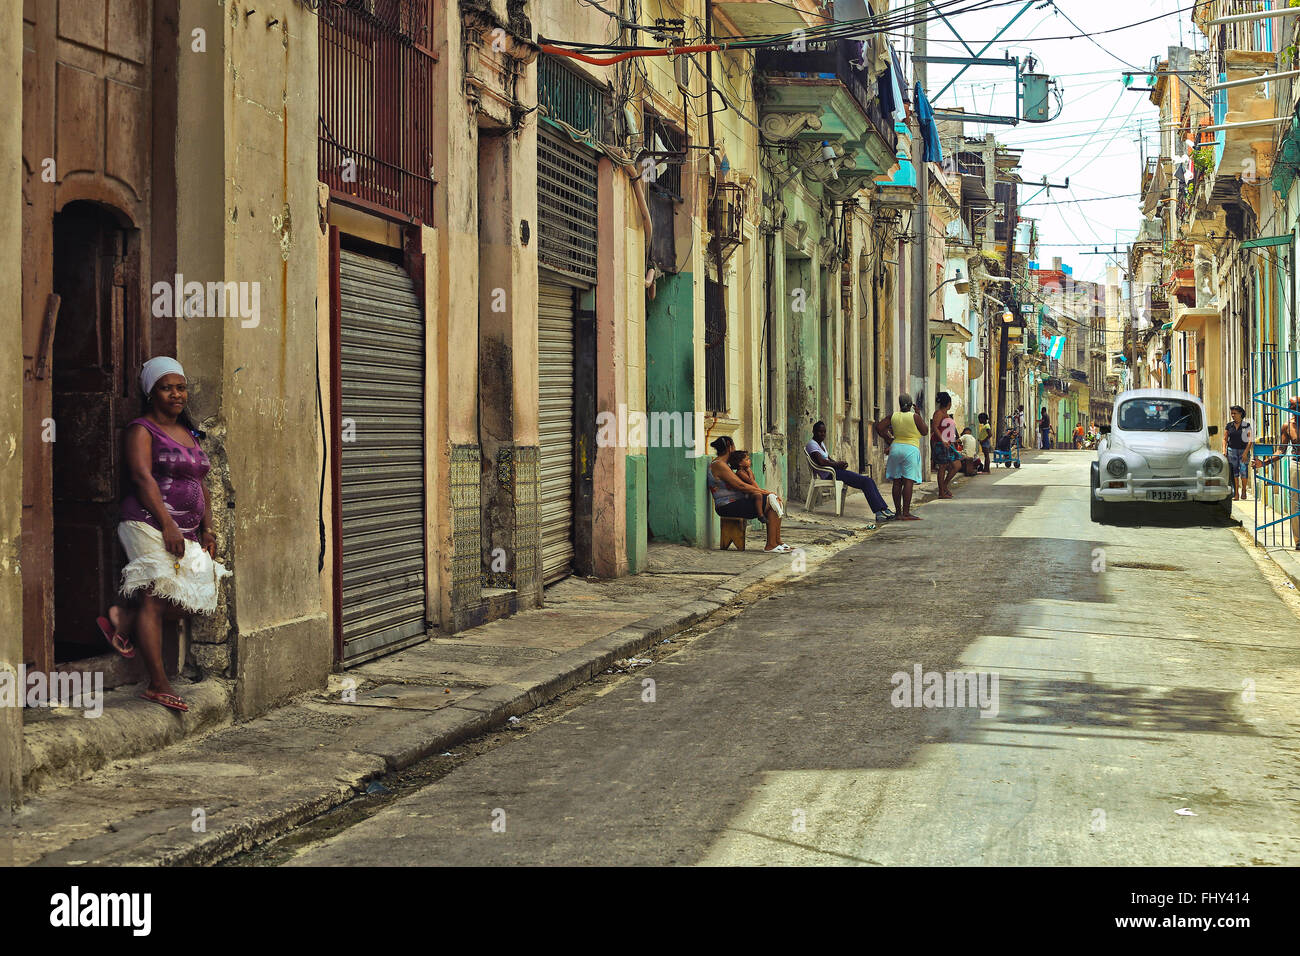 Colonial Houses And Streets In Old Havana Cuba Photo Vintage Style